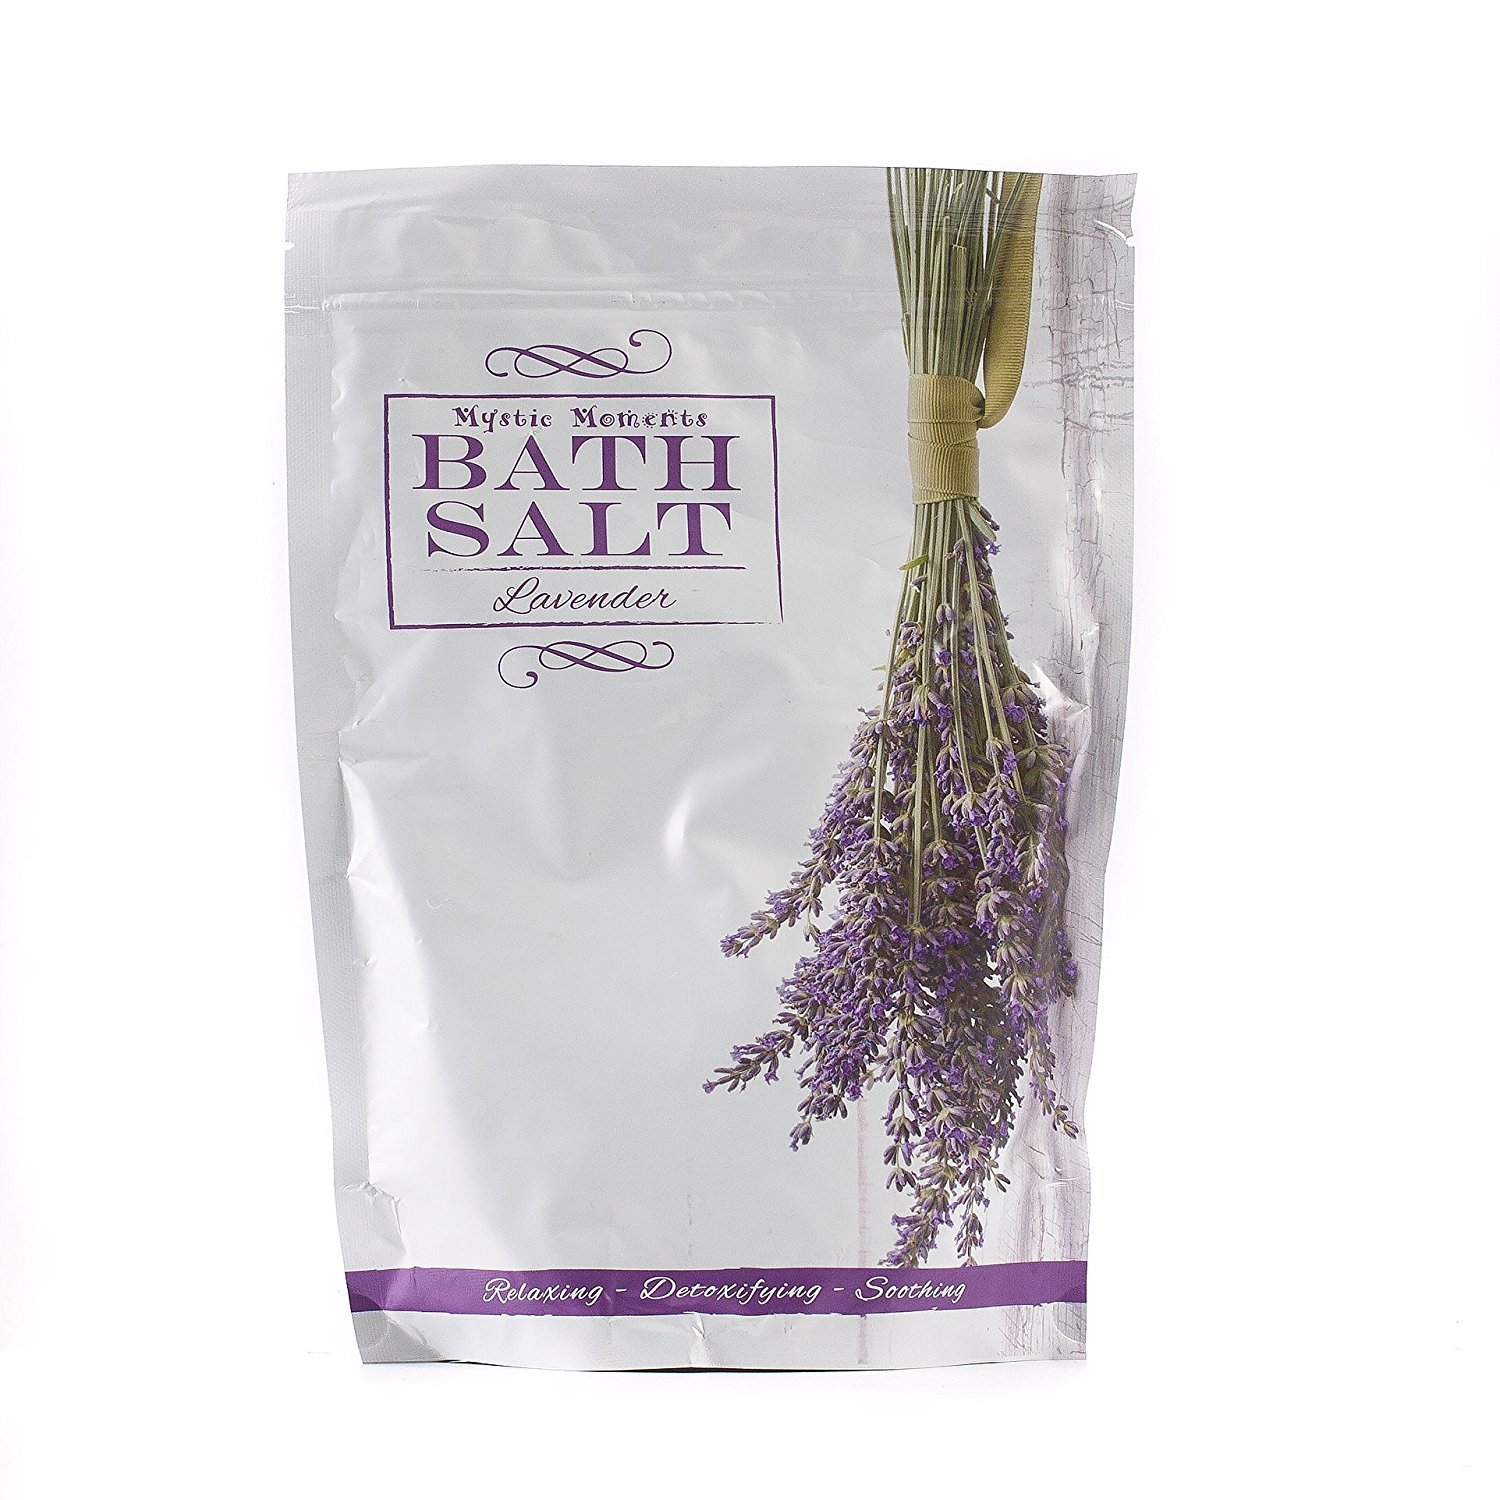 Bath Salt - Lavender - 1Kg Mystic Moments SALTLAVE1K